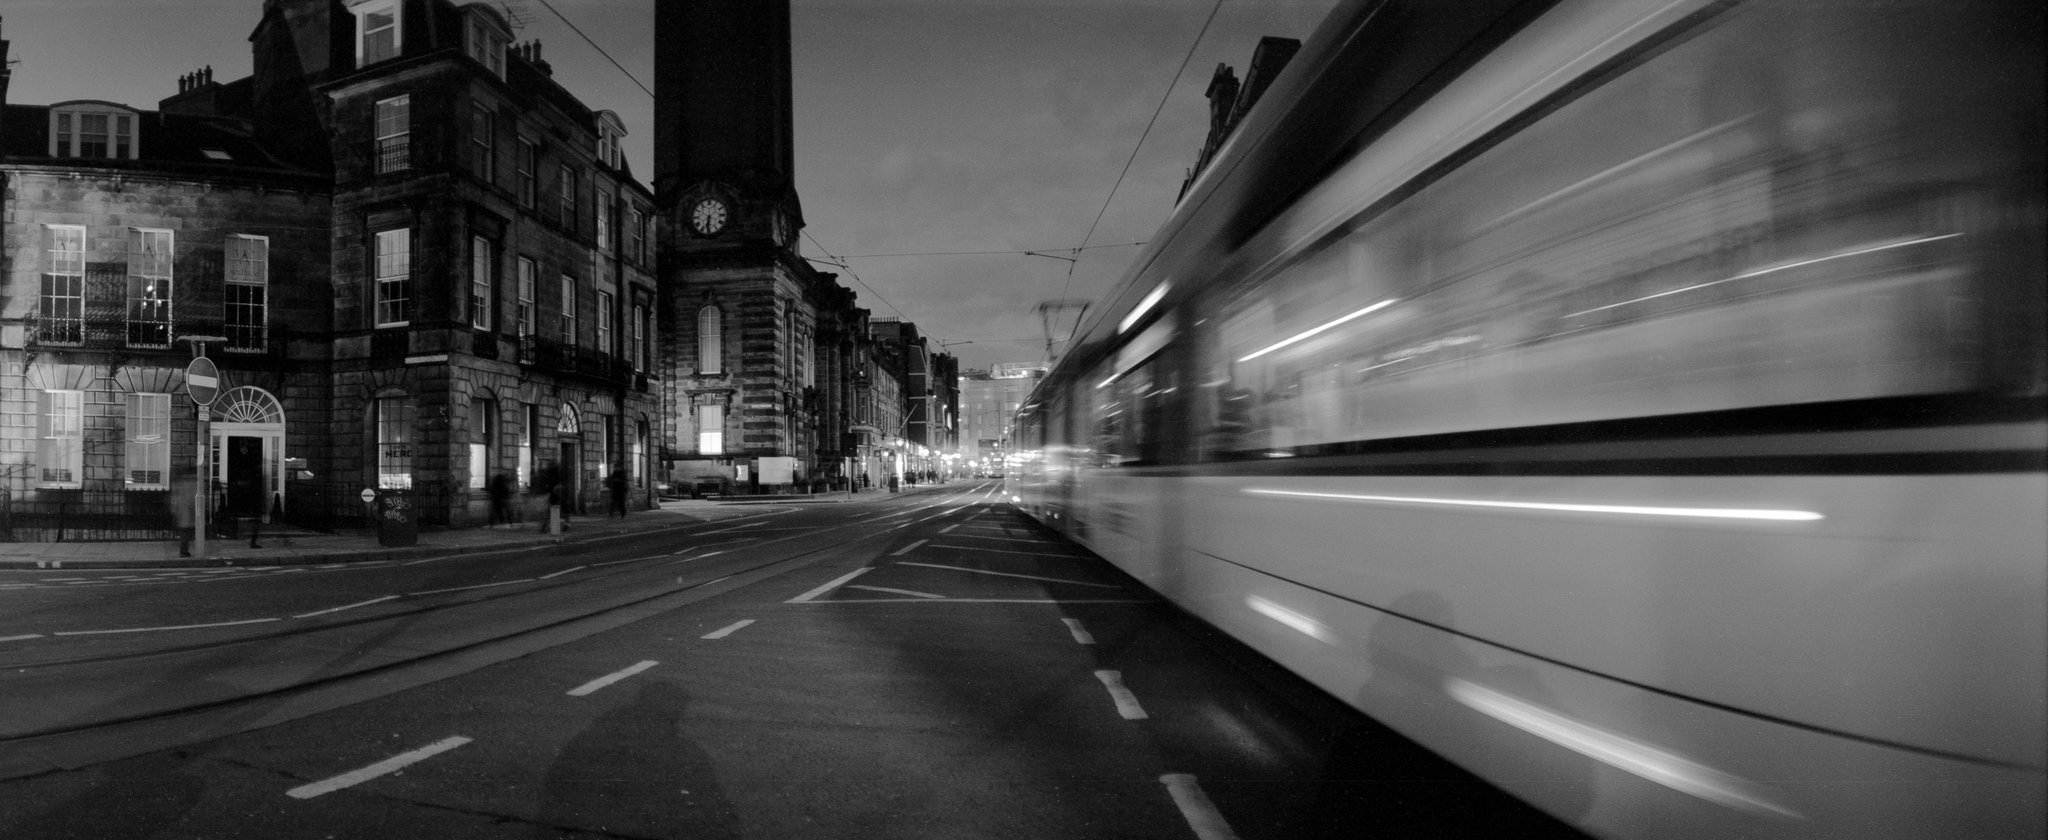 @BNRYNLDS Replying to @ILFORDPhoto I am big fan of FP4+ for the #nightime streets. #ilfordphoto #fridayfavourites